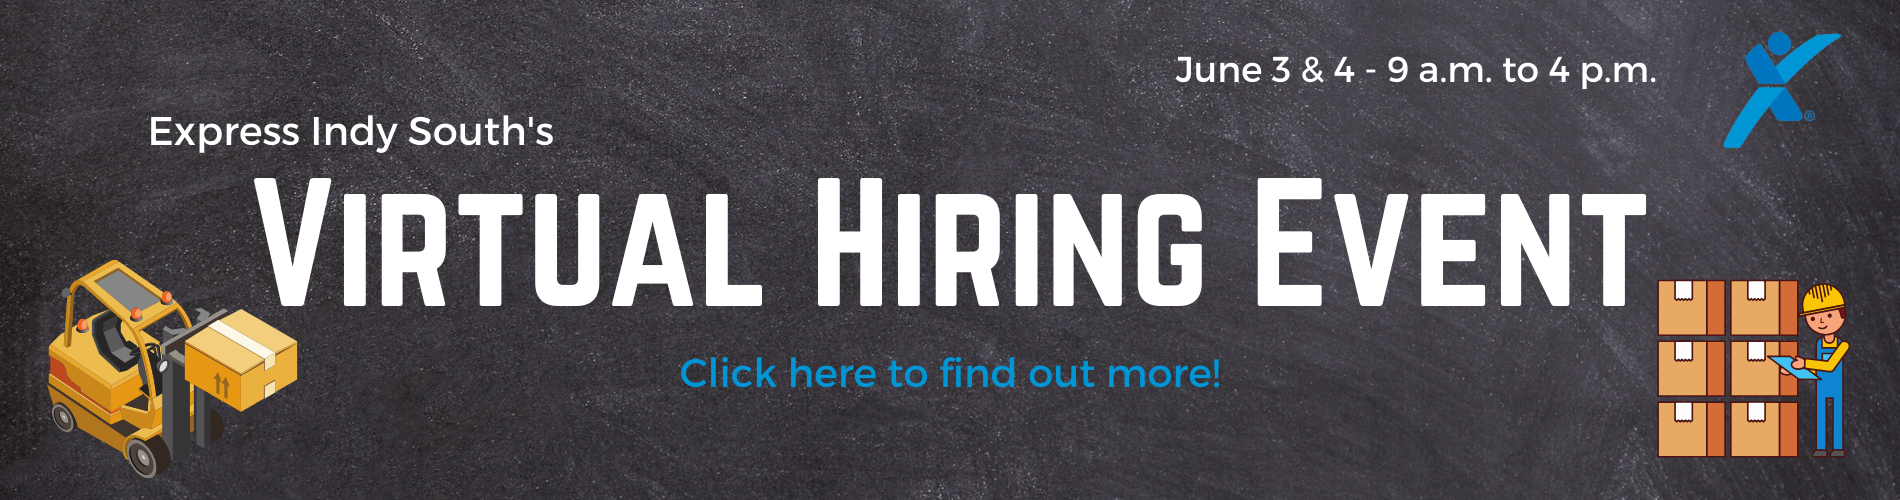 Virtual Hiring Event Website Banner